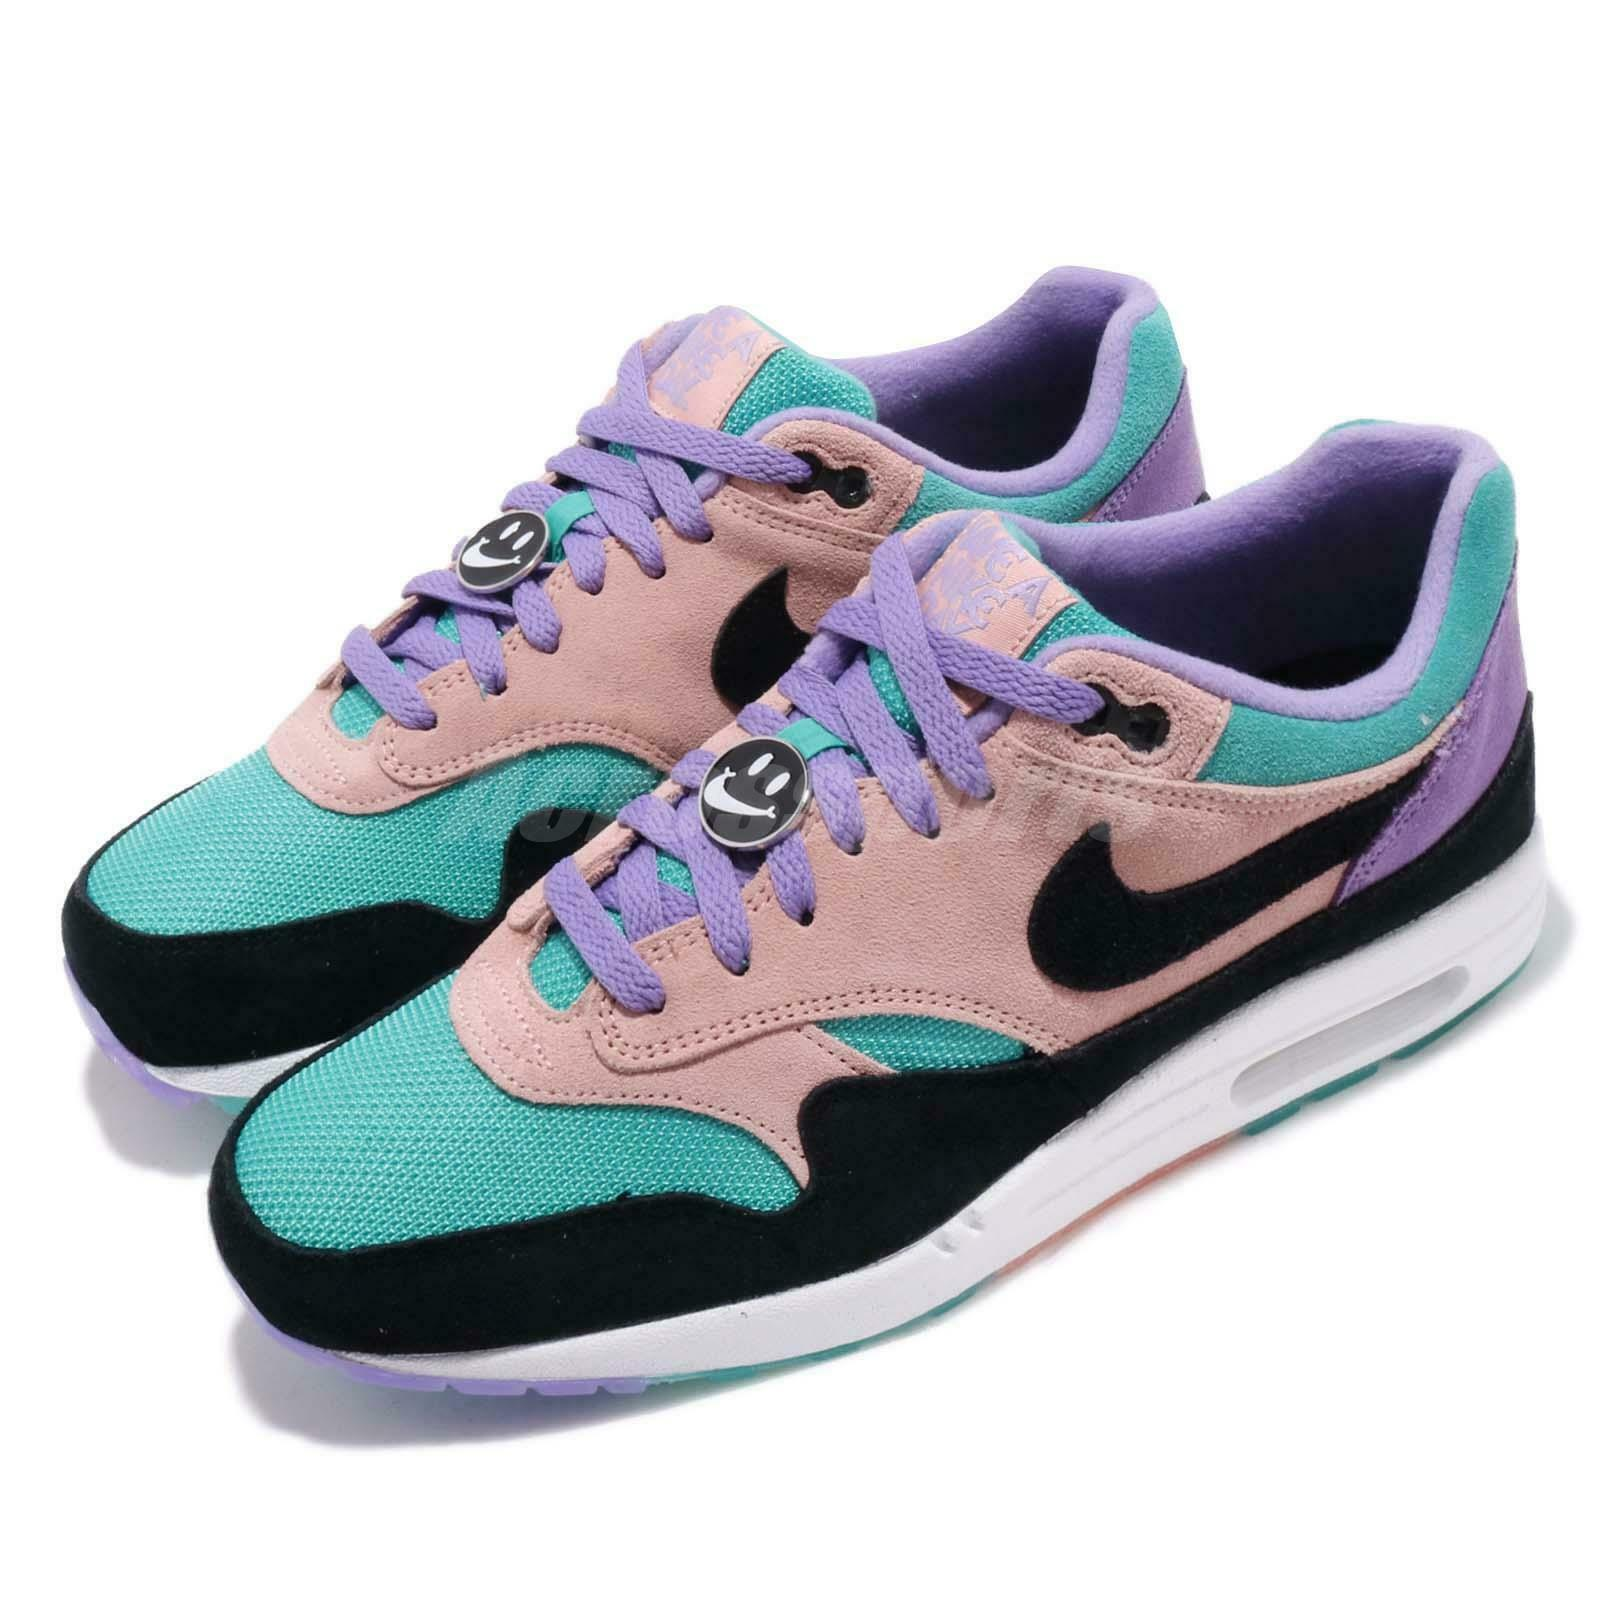 Nike Air Max 1 ND Have A Nike Day Purple Black Coral Running Shoes BQ8929 500